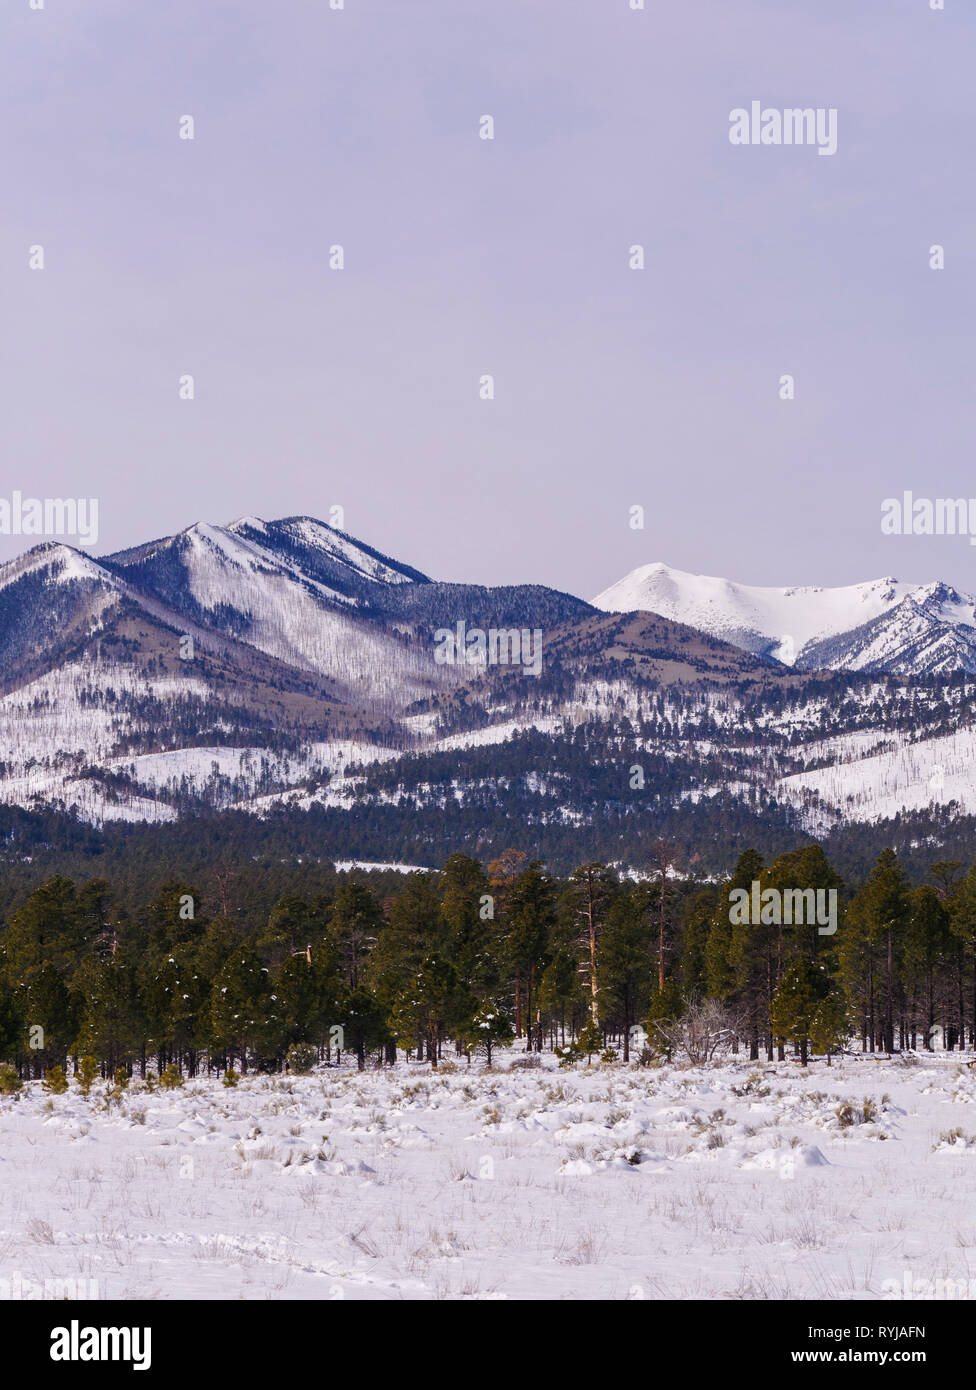 The San Francisco Peaks, which are the remnants of a collapsed stratovolcano, as viewed from Sunset Crater National Monument, Arizona. - Stock Image